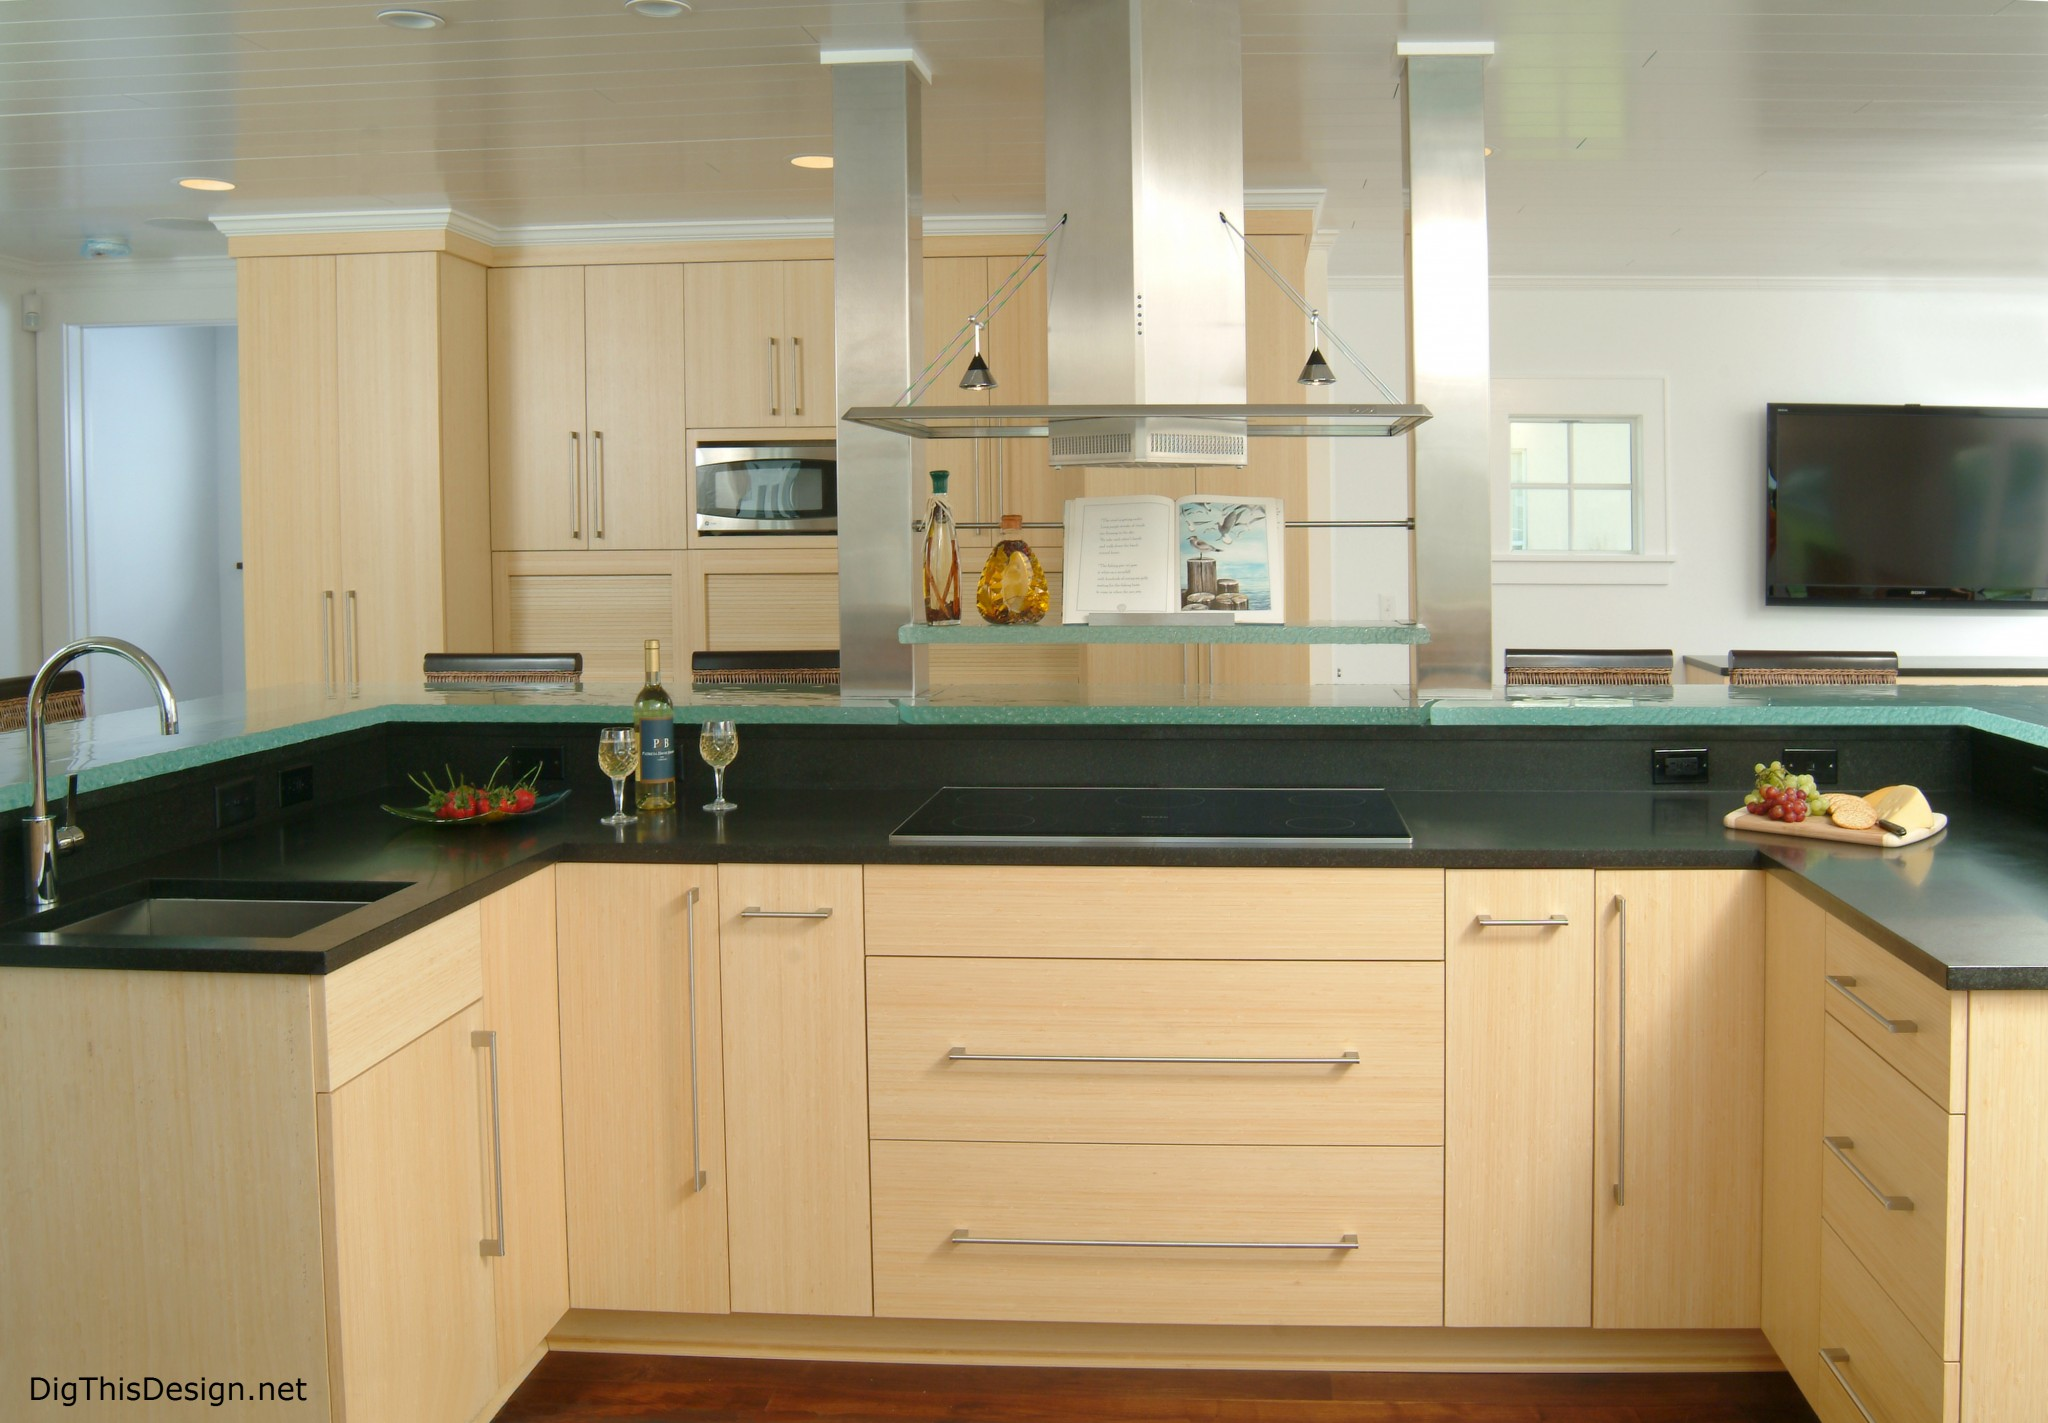 Pdb designs contemporary kitchen hood dig this design - Contemporary kitchen design ideas tips ...